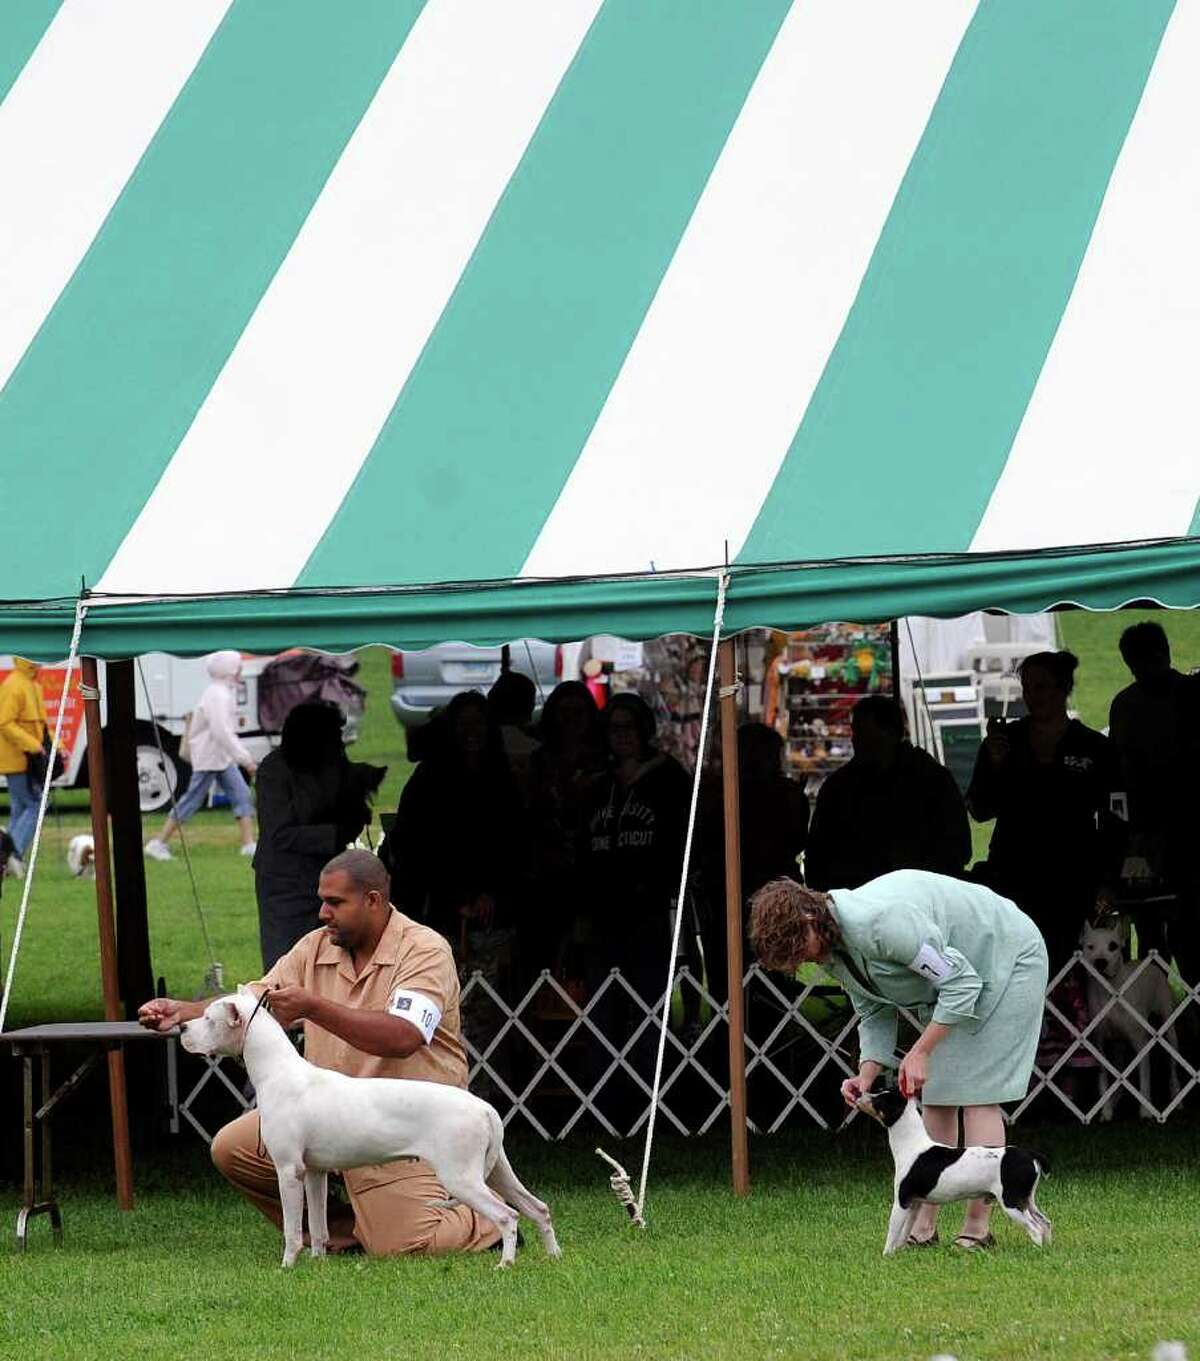 Greenwich Kennel Club All-Breed Dog Show at Taylor Farm Park, Norwalk, Saturday afternoon, June 11, 2011.